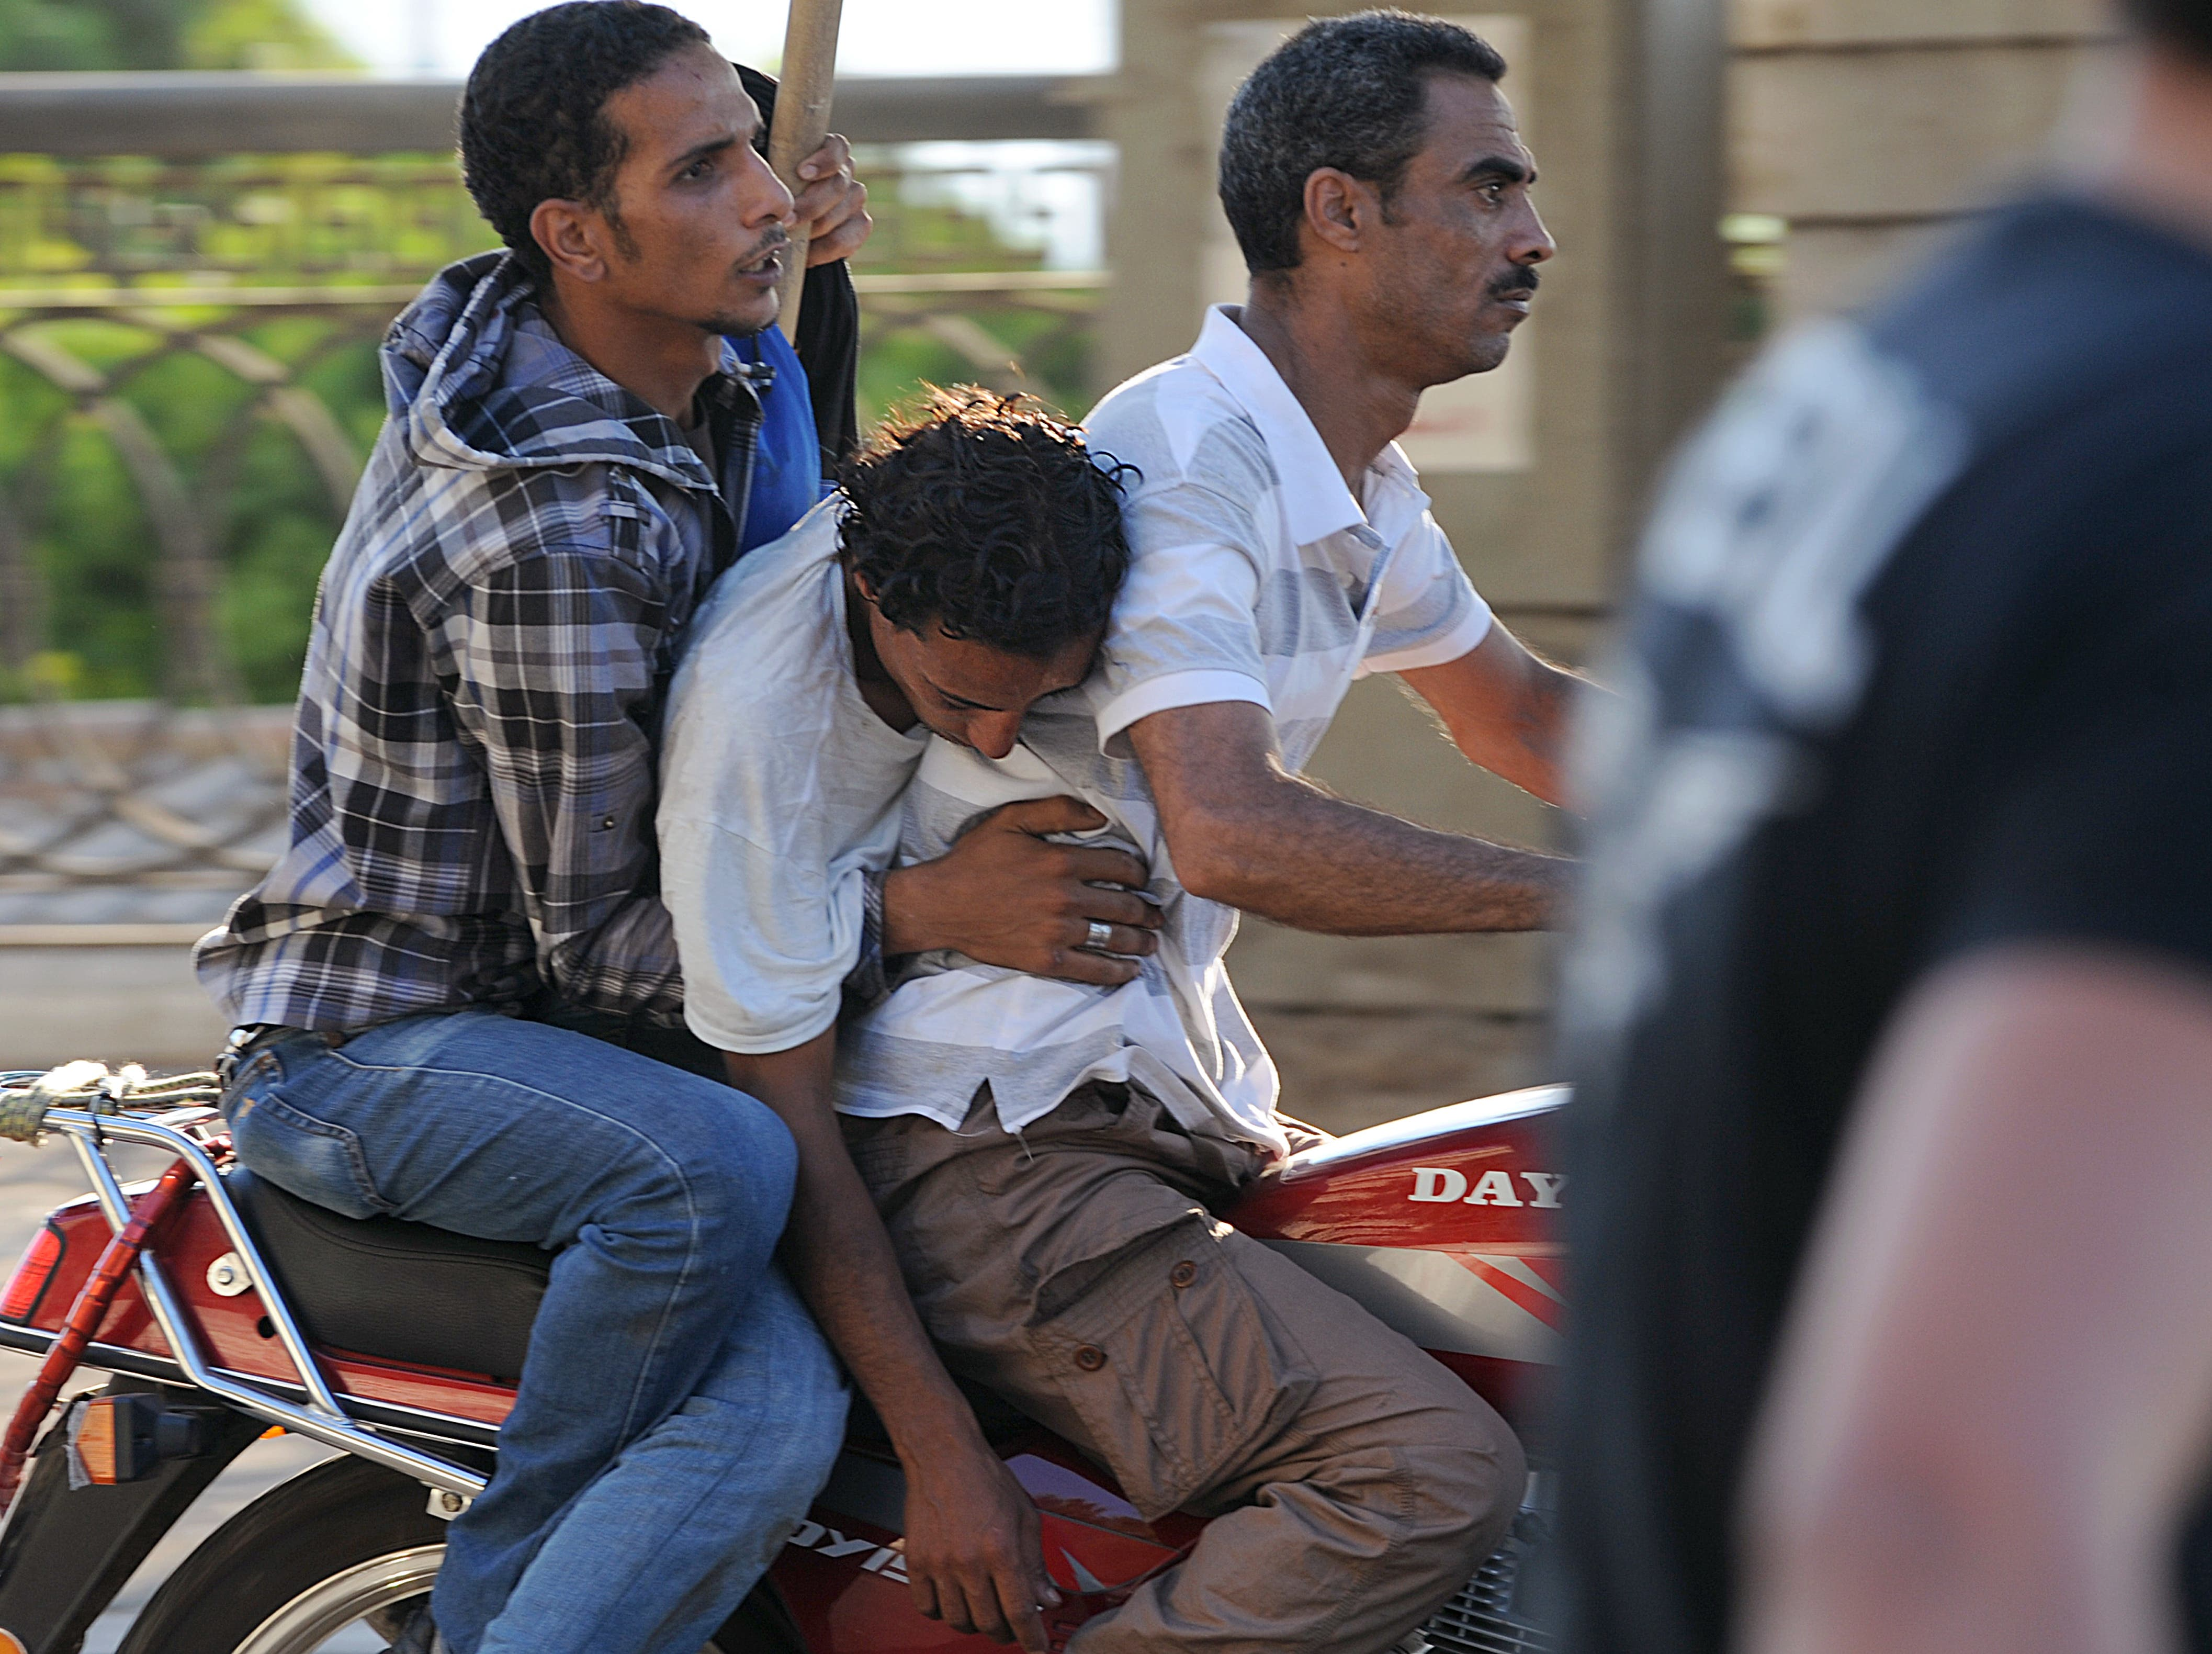 Army supporters evacuate an injured man after clashes with Morsi supporters on July 22. (AFP / FAYEZ NURELDINE)